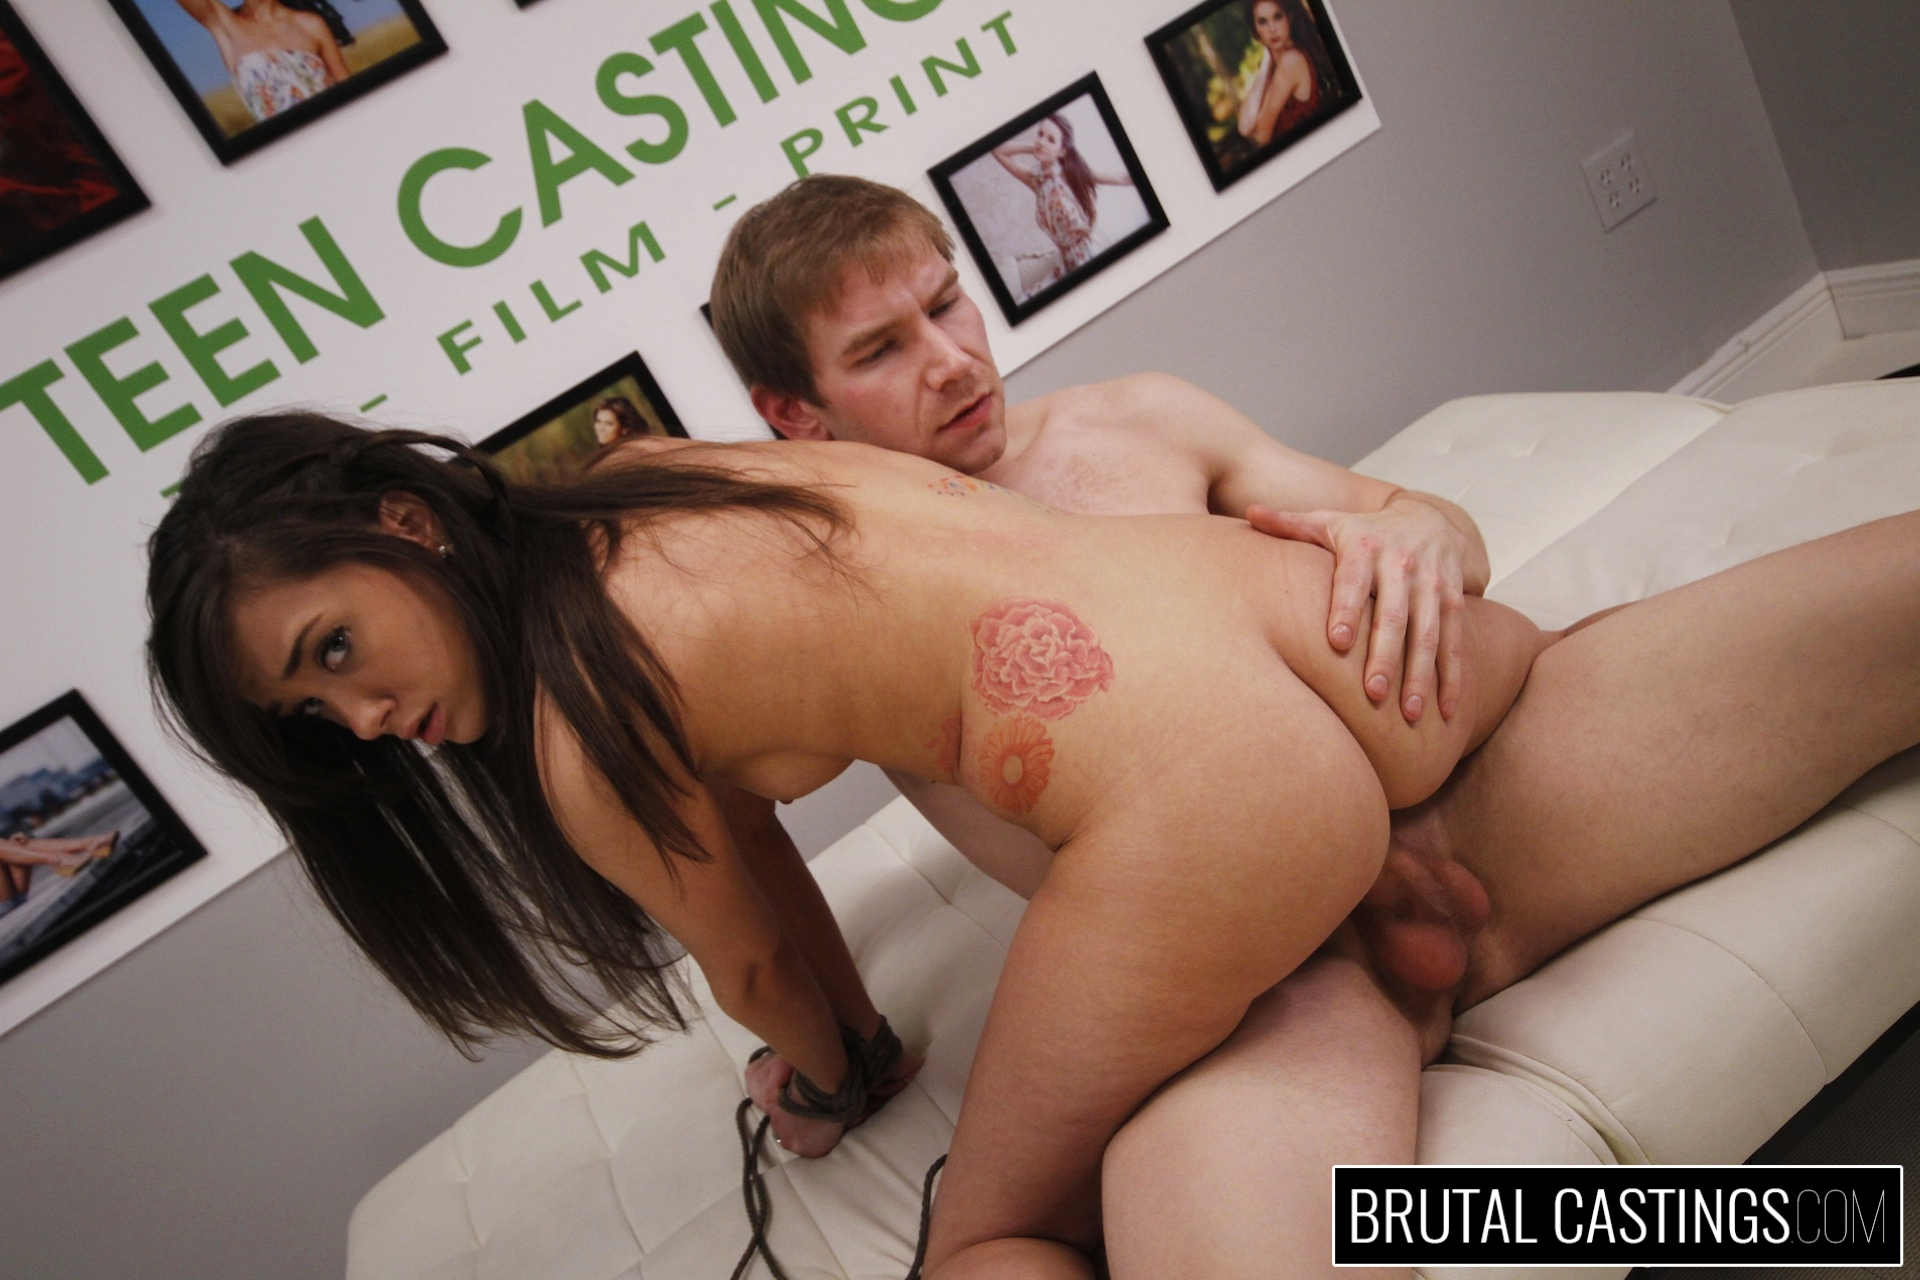 Casting couch with gia paige. Gia Paige, a hardworking young hottie, desperately wants to quit her job for high fashion modeling with Teen Castings! She'll do anything to get what she wants. She'll even endure , domination, rope bondage, deepthroat bj, fingering, squirting, spanking, slapping and deep penetration rough sex.